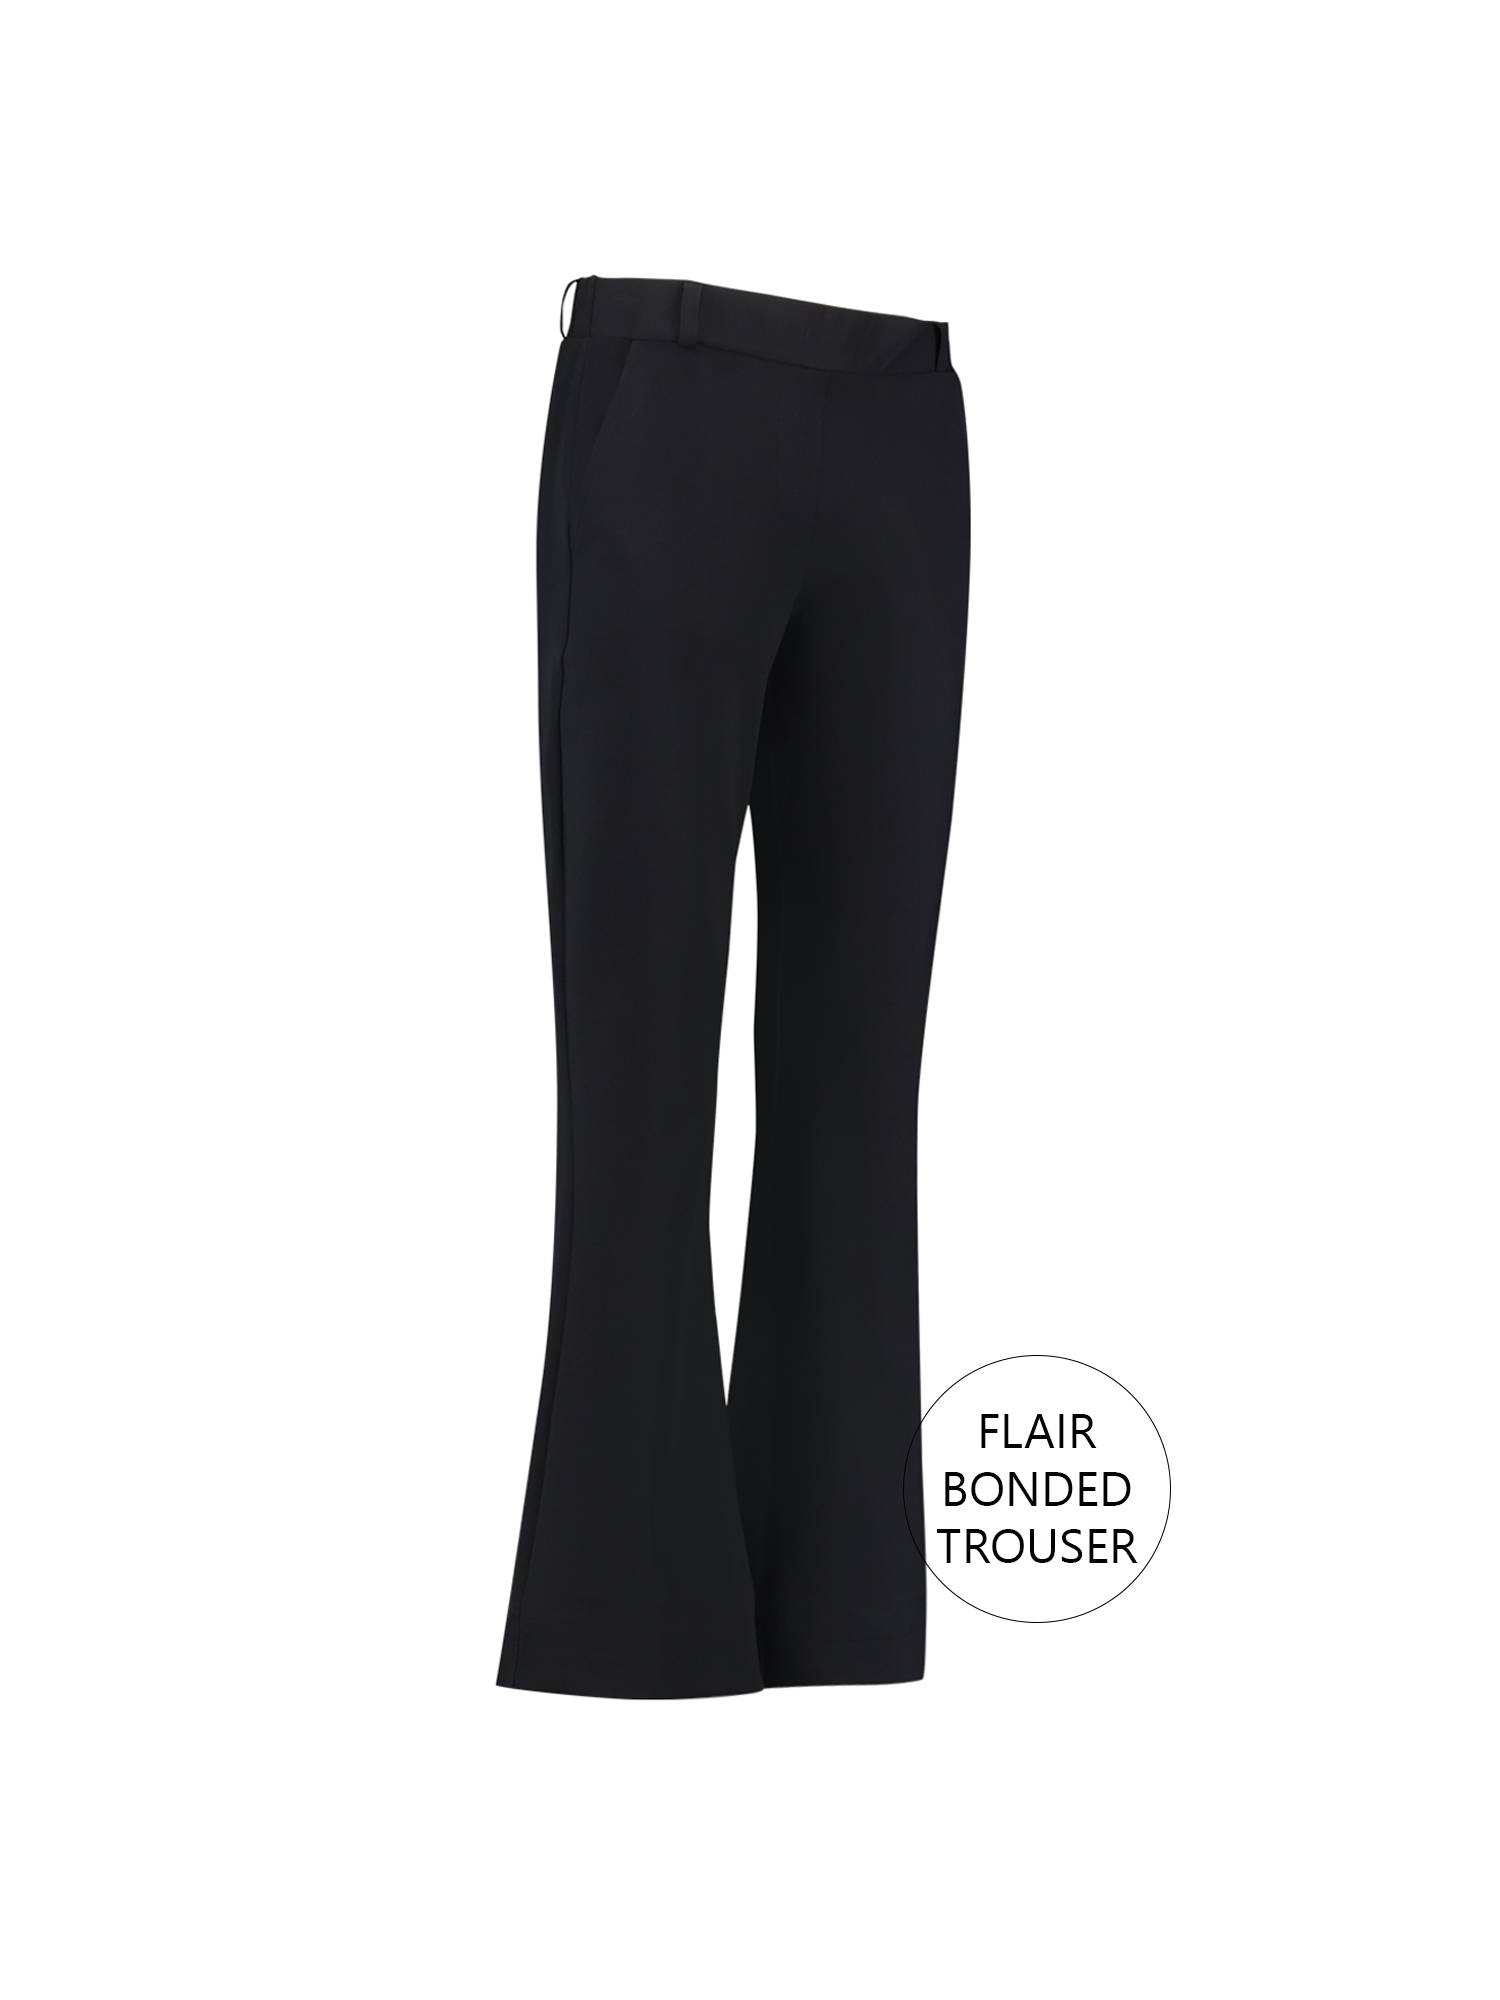 Studio Anneloes Flair Bonded Trouser 9000 Black | Pico Women Fashion & More